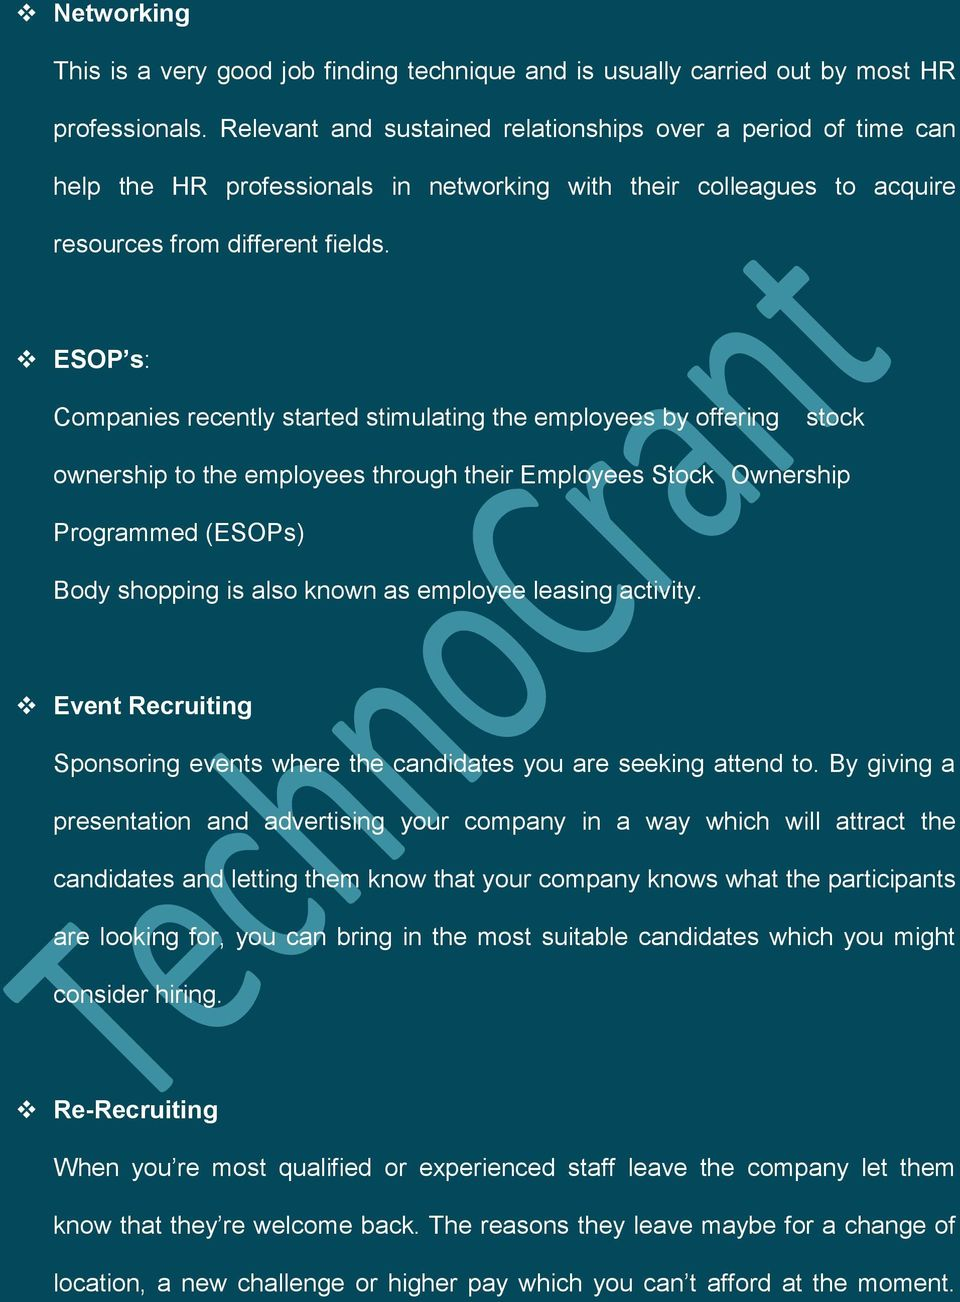 ESOP s: Companies recently started stimulating the employees by offering stock ownership to the employees through their Employees Stock Ownership Programmed (ESOPs) Body shopping is also known as